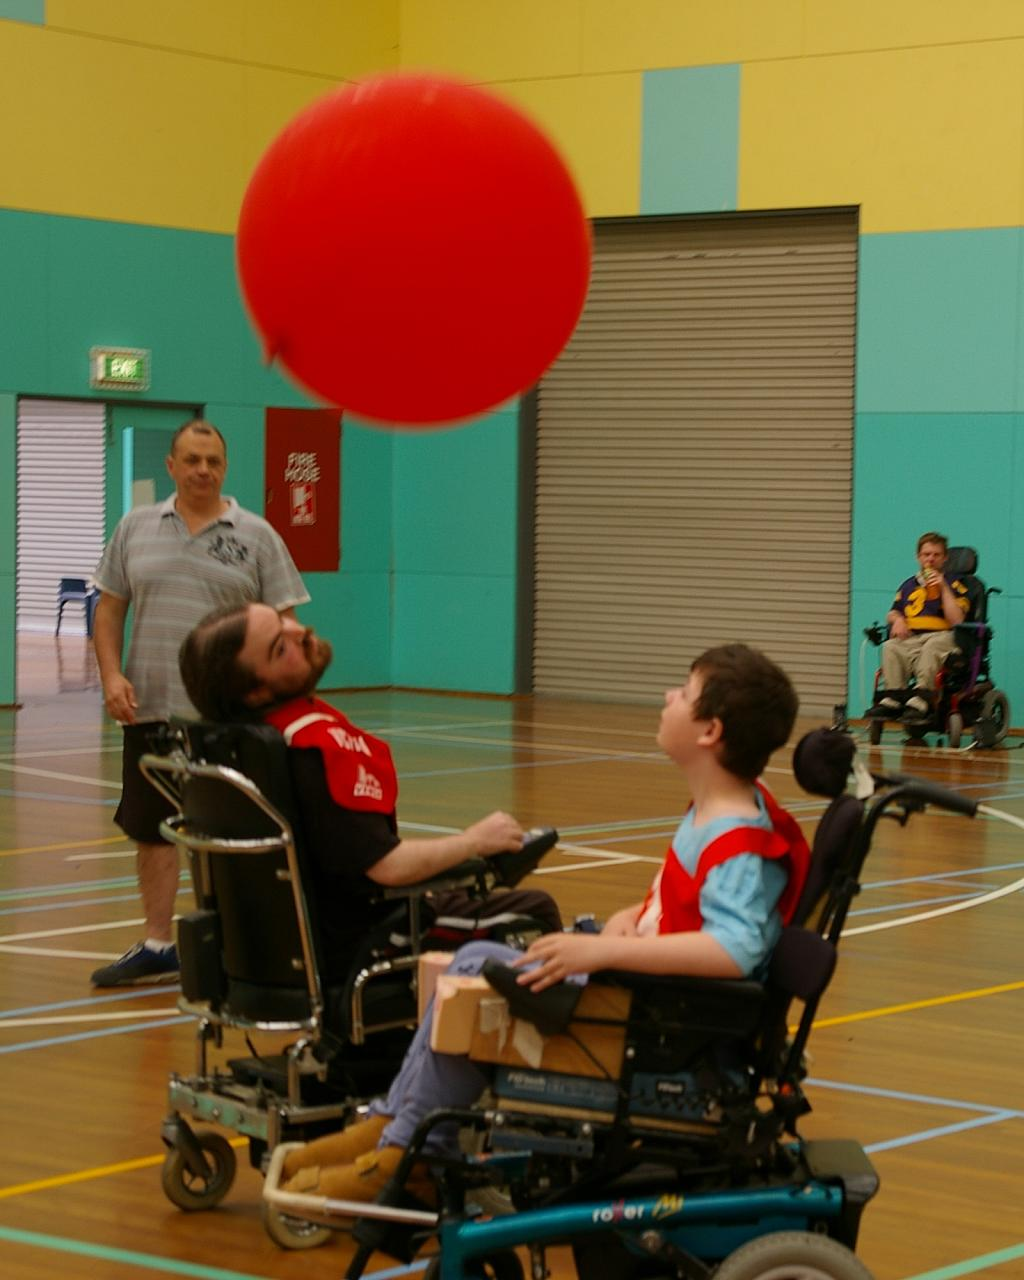 two individuals in electrical wheelchairs playing soccor